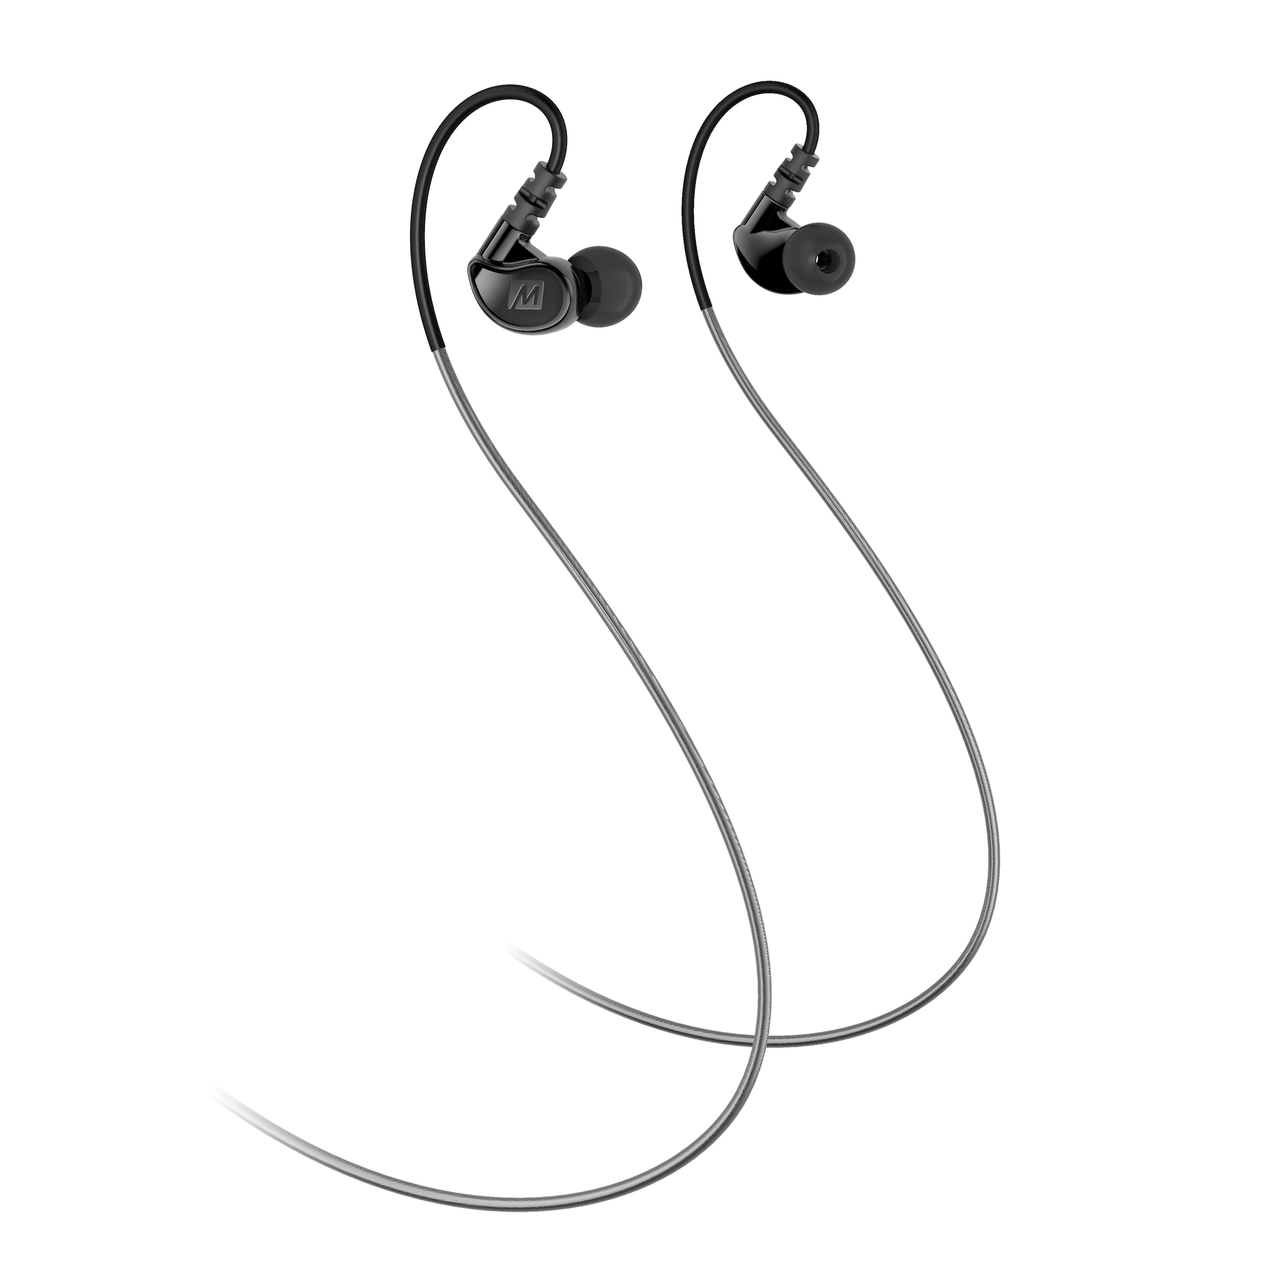 Mee Audio M6g2 In Ear Sports Headphone Noise Isolating Version Black New